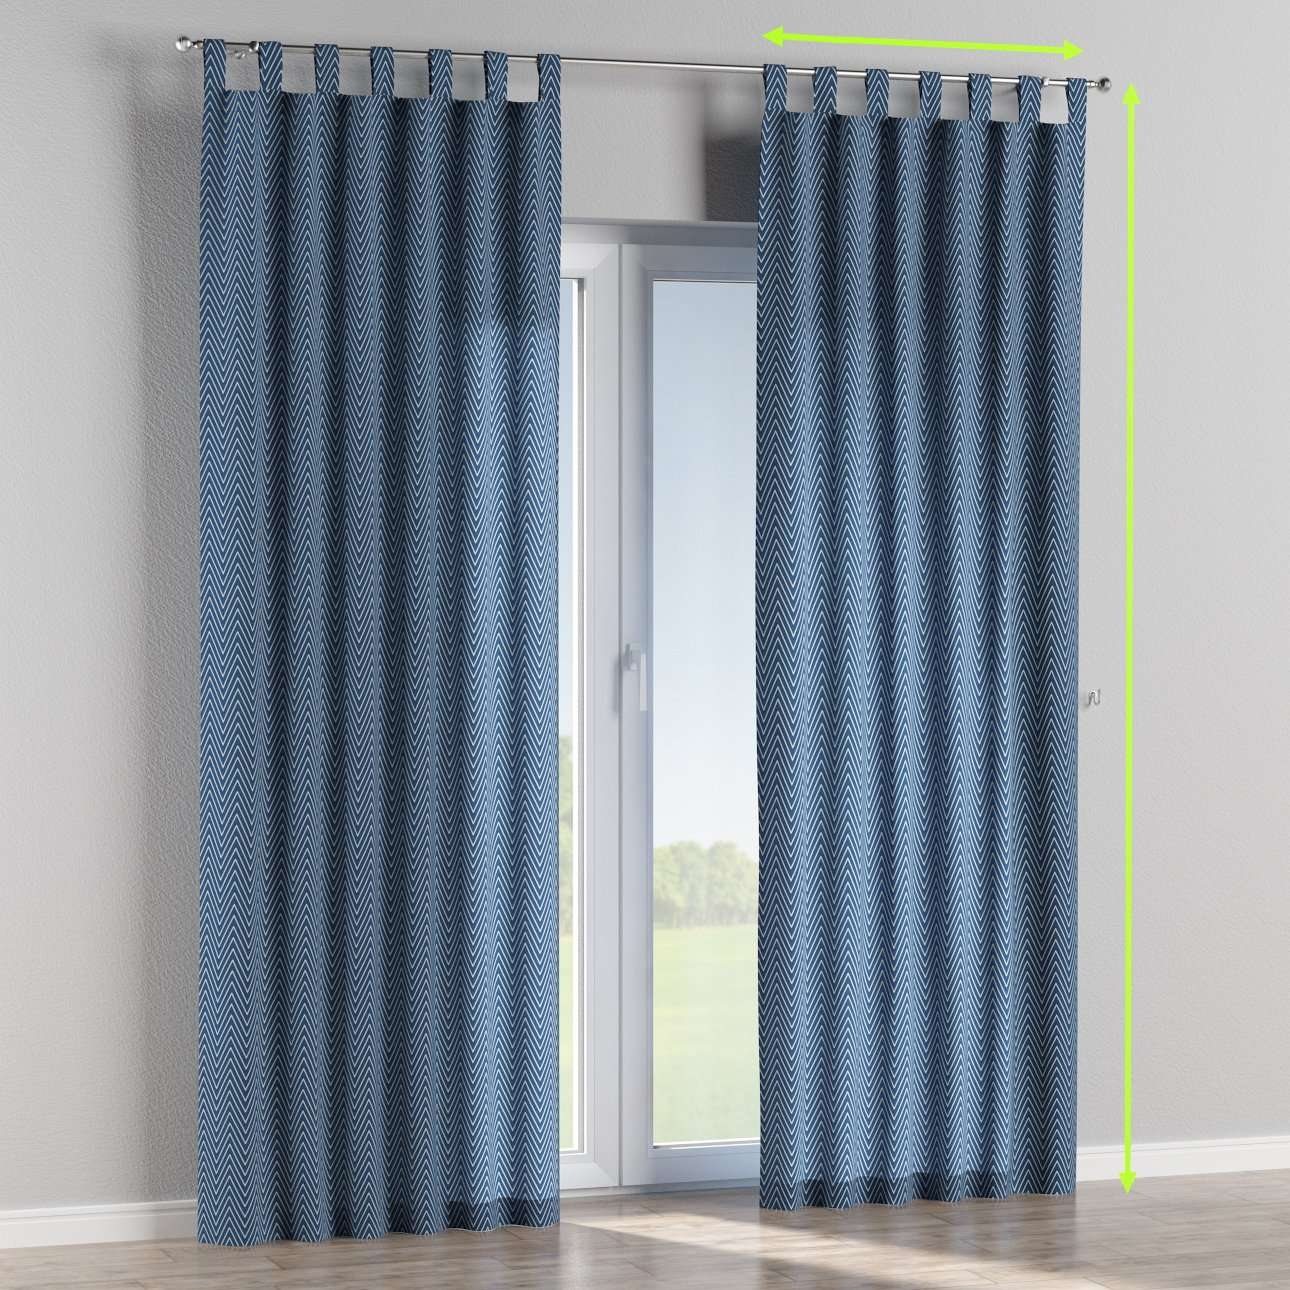 Tab top curtains in collection Brooklyn, fabric: 137-88